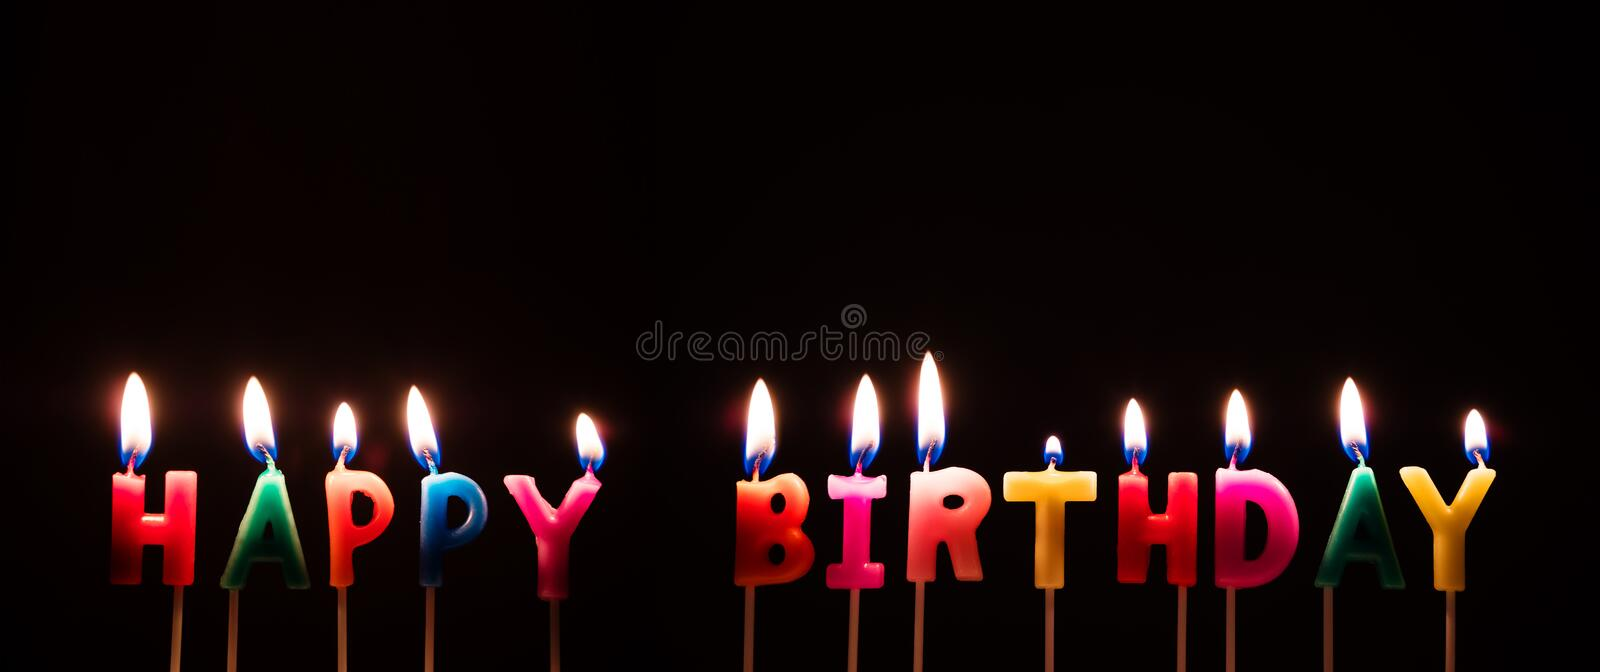 Colorful Happy Birthday Candles, on black background royalty free stock image